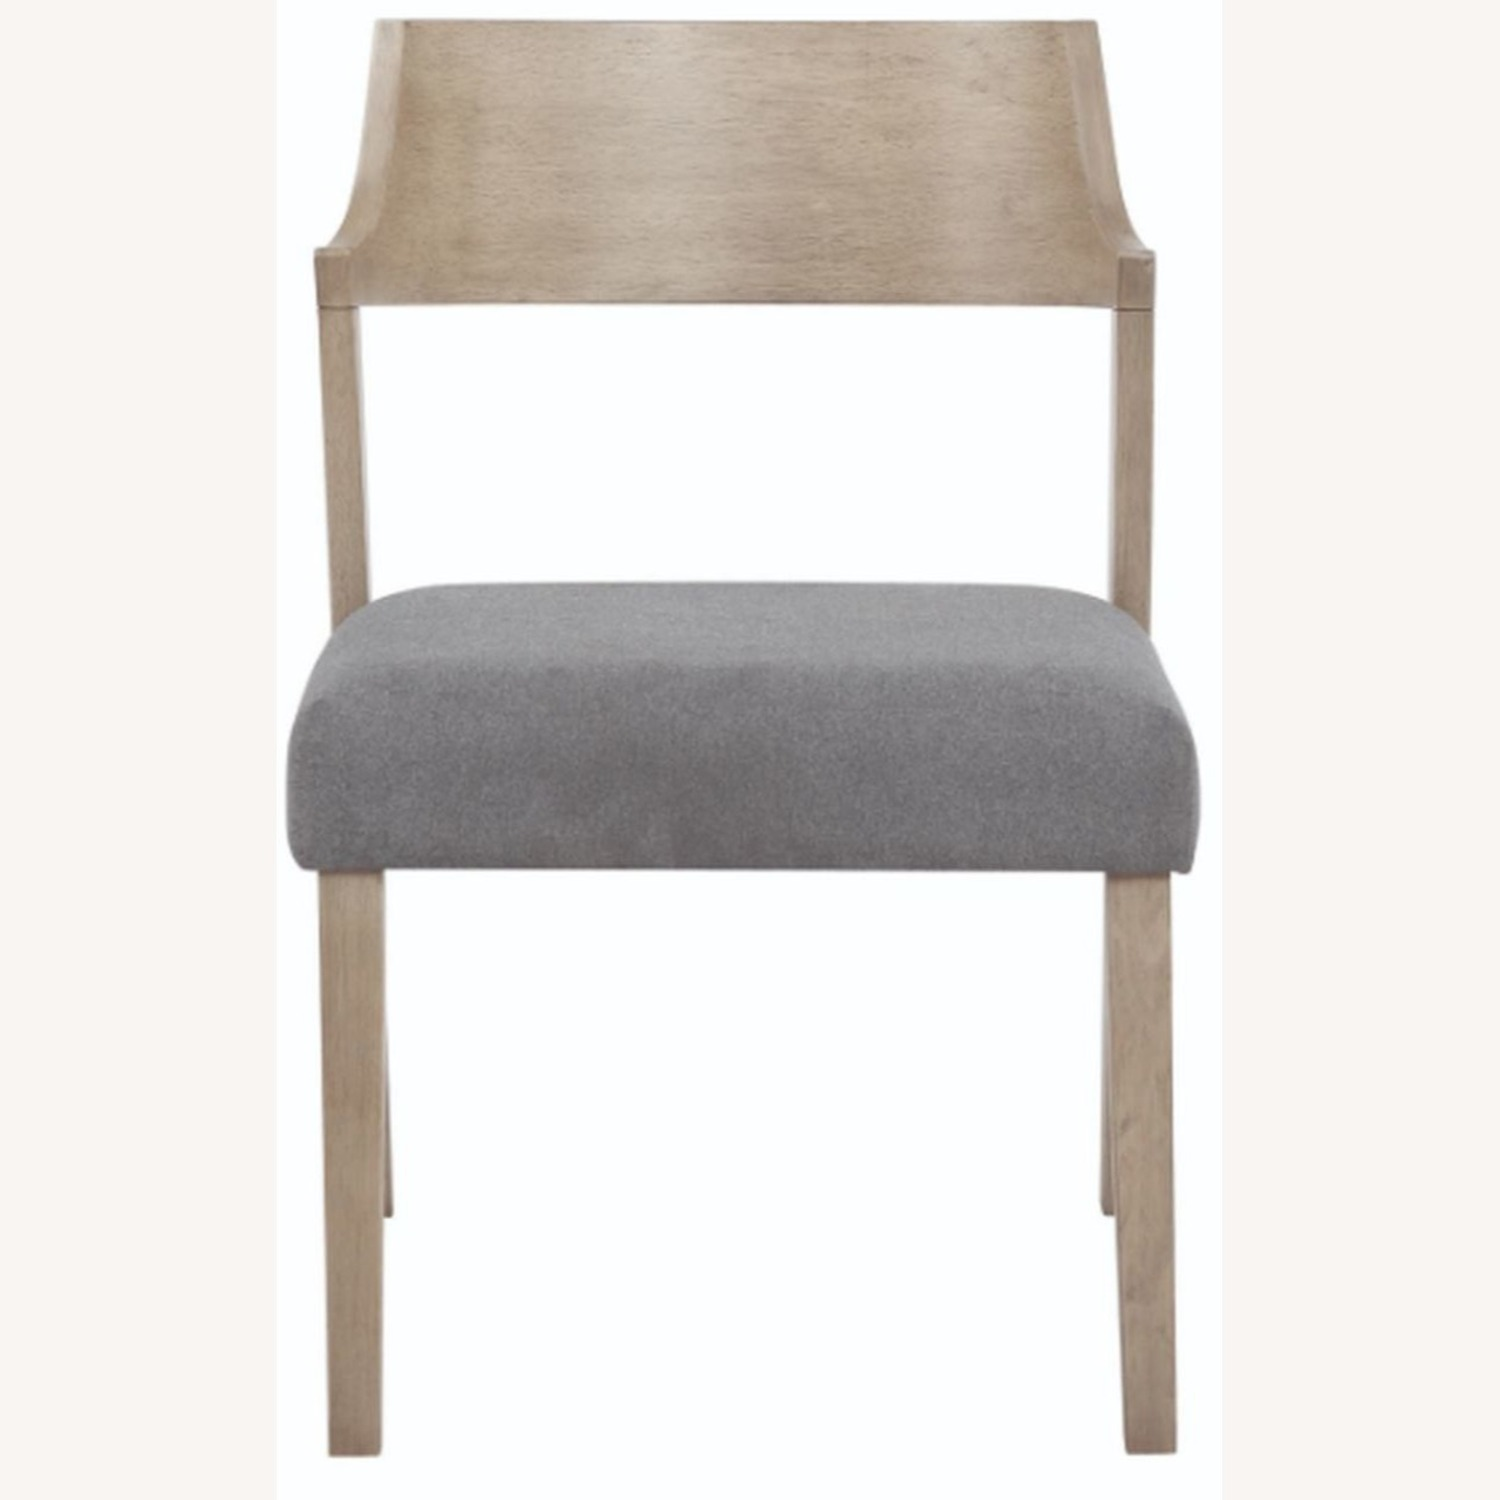 Contemporary Side Chair In Grey Oak Finish - image-1